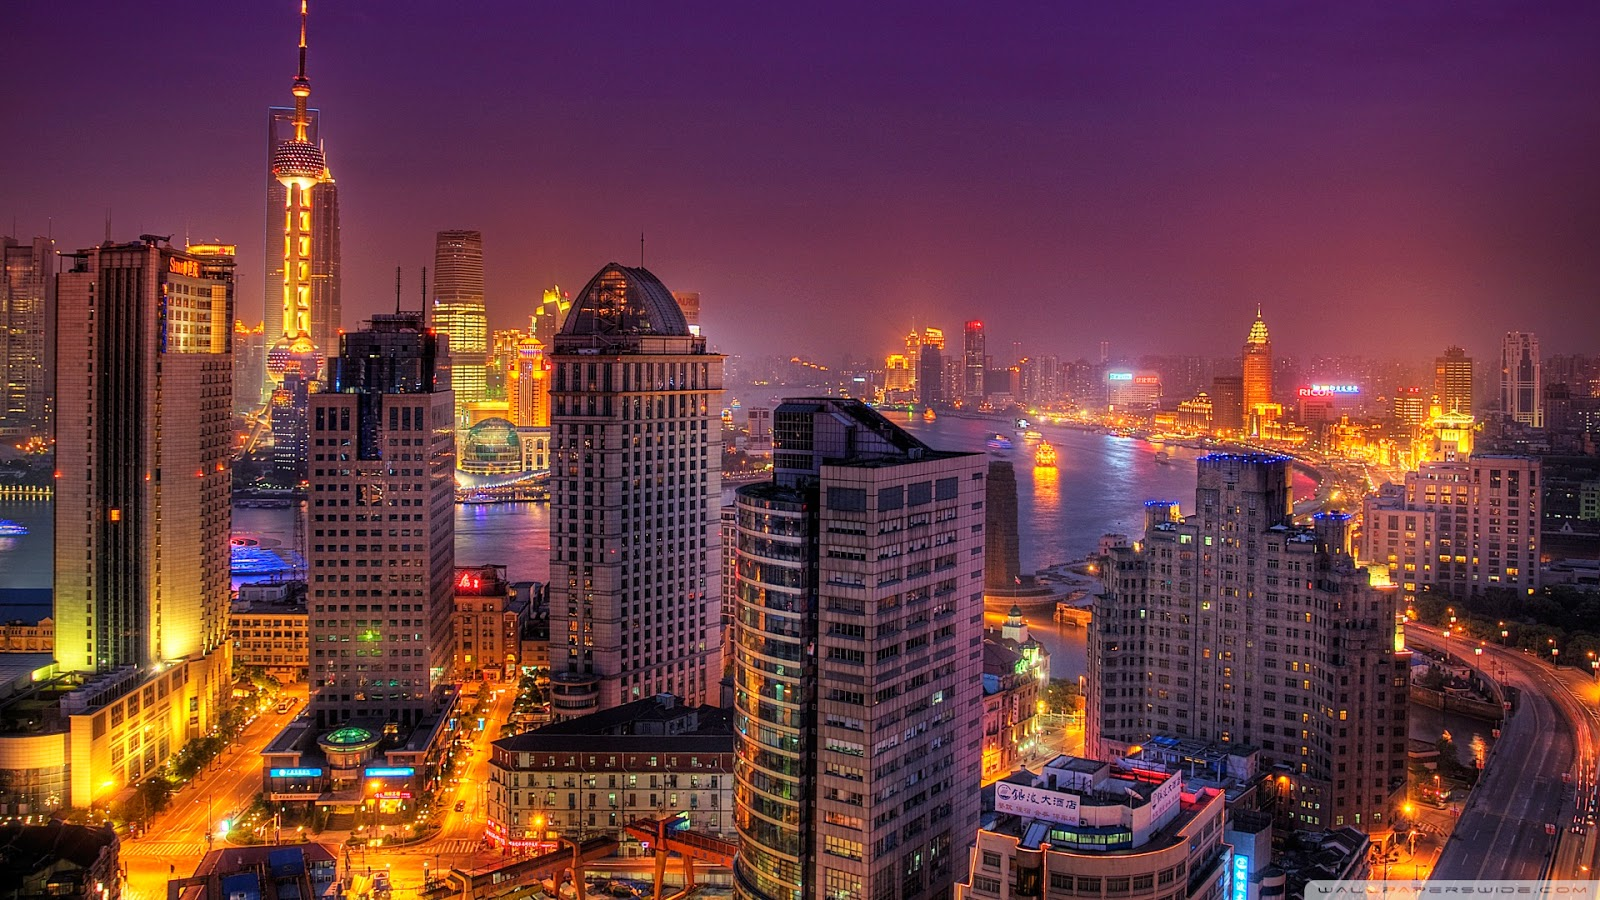 Colorful Cities HD Wallpapers